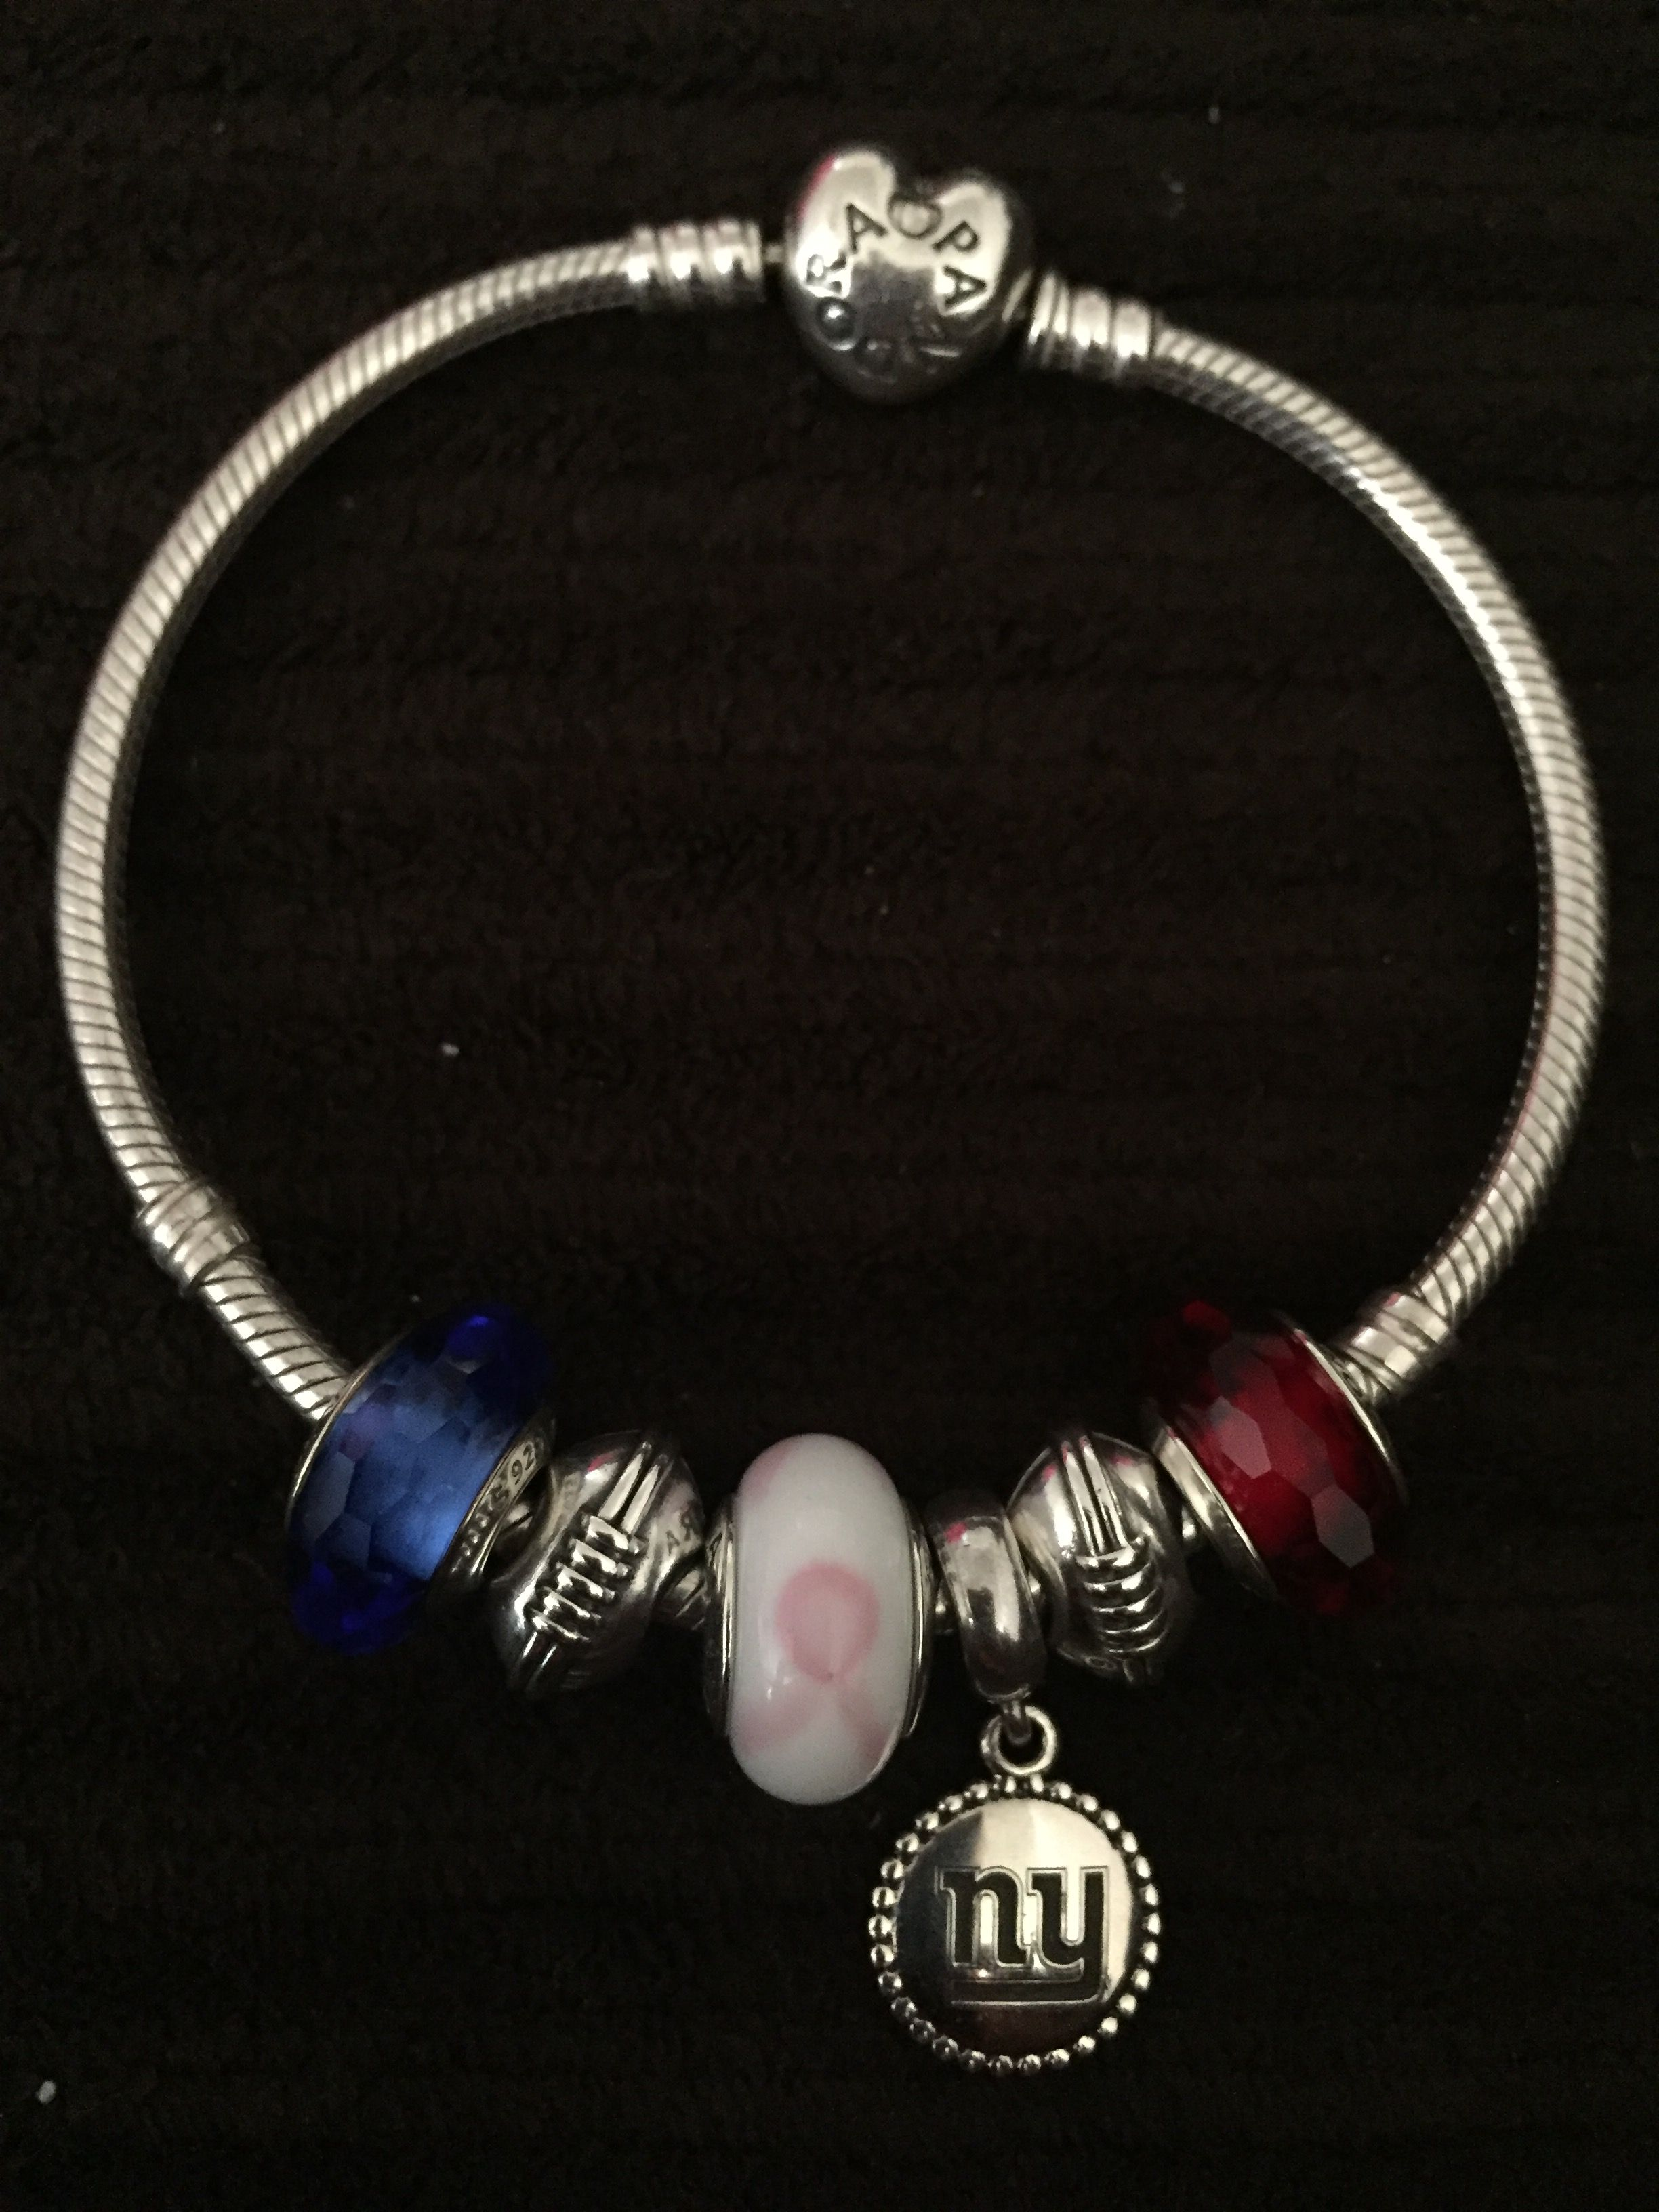 Gonygiants Nfltcancer Nygiants Pandora New York Giants Bracelet